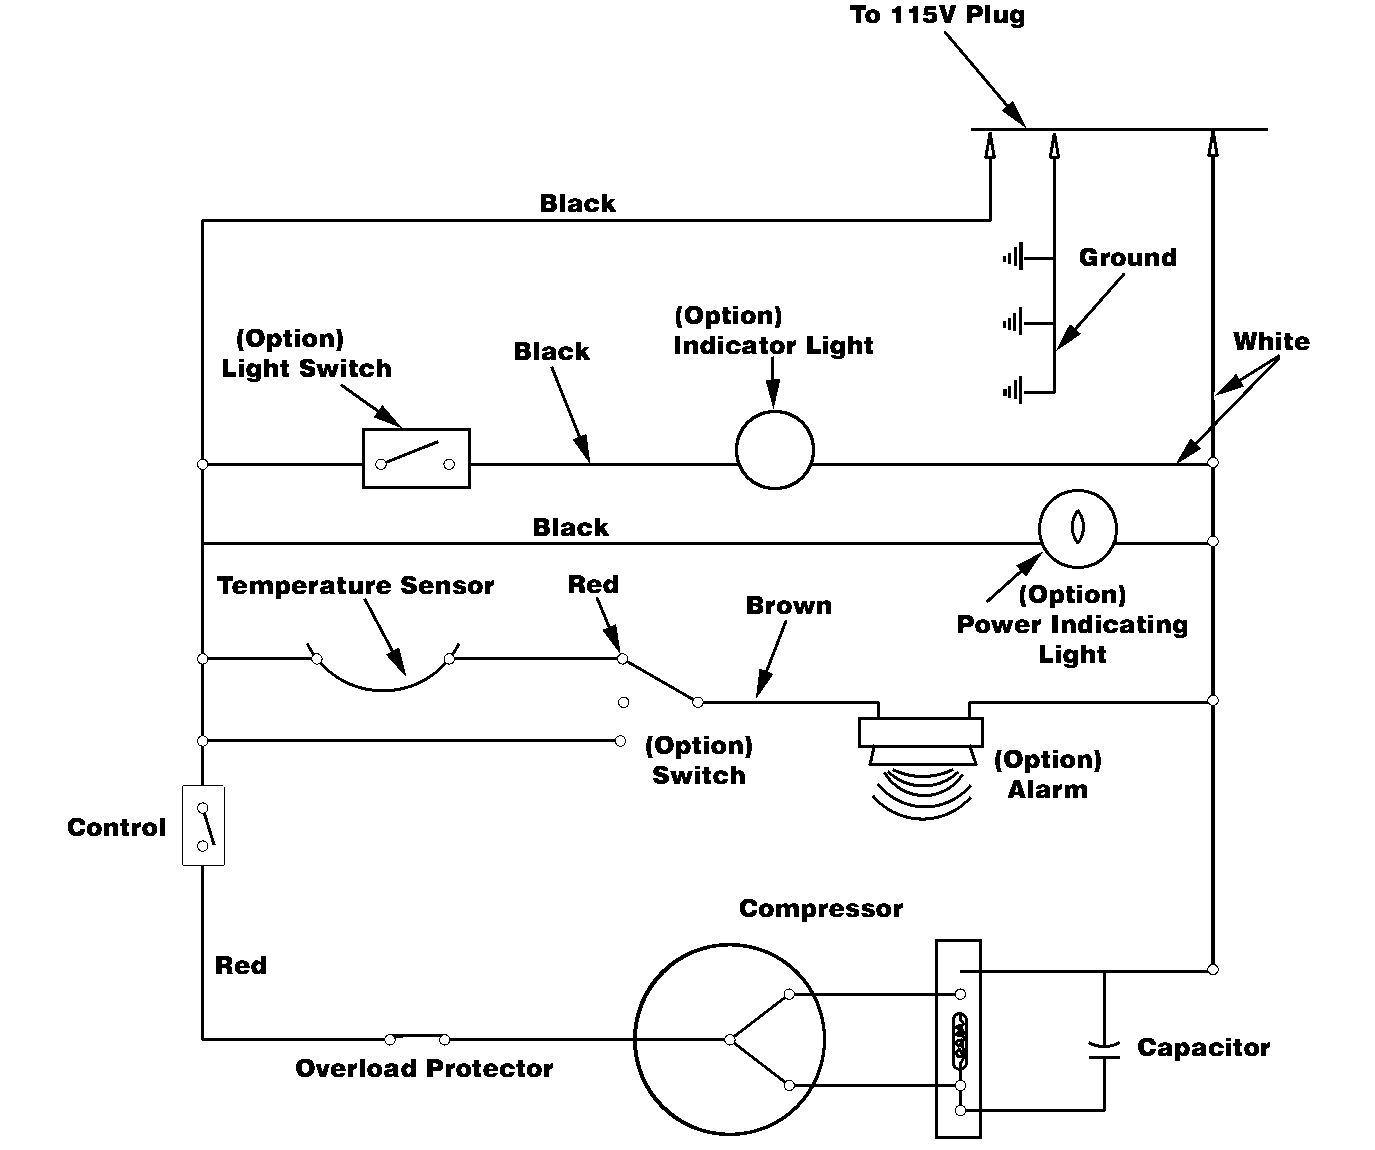 hight resolution of freezer electrical schematic on freezer wiring a circuit